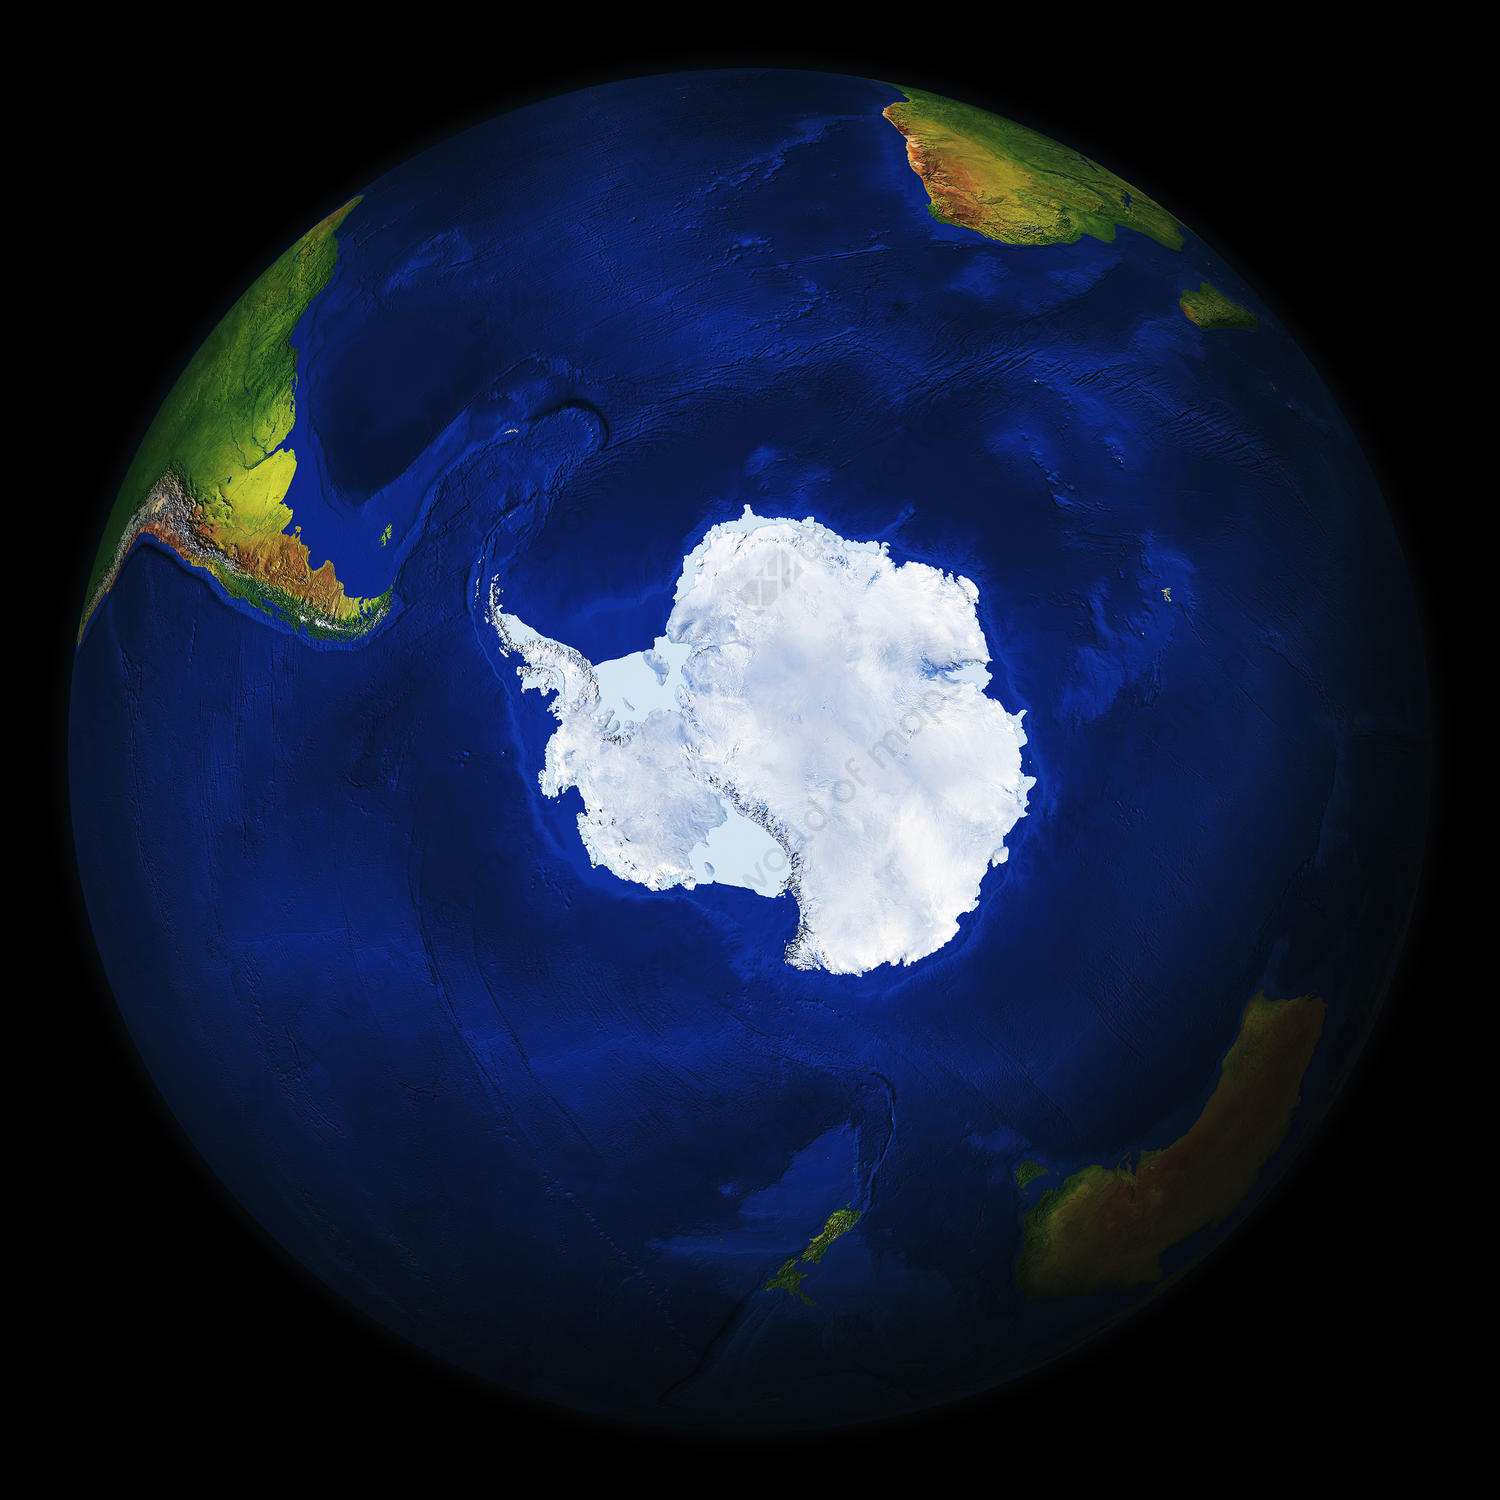 Digital globe Antarctica with relief